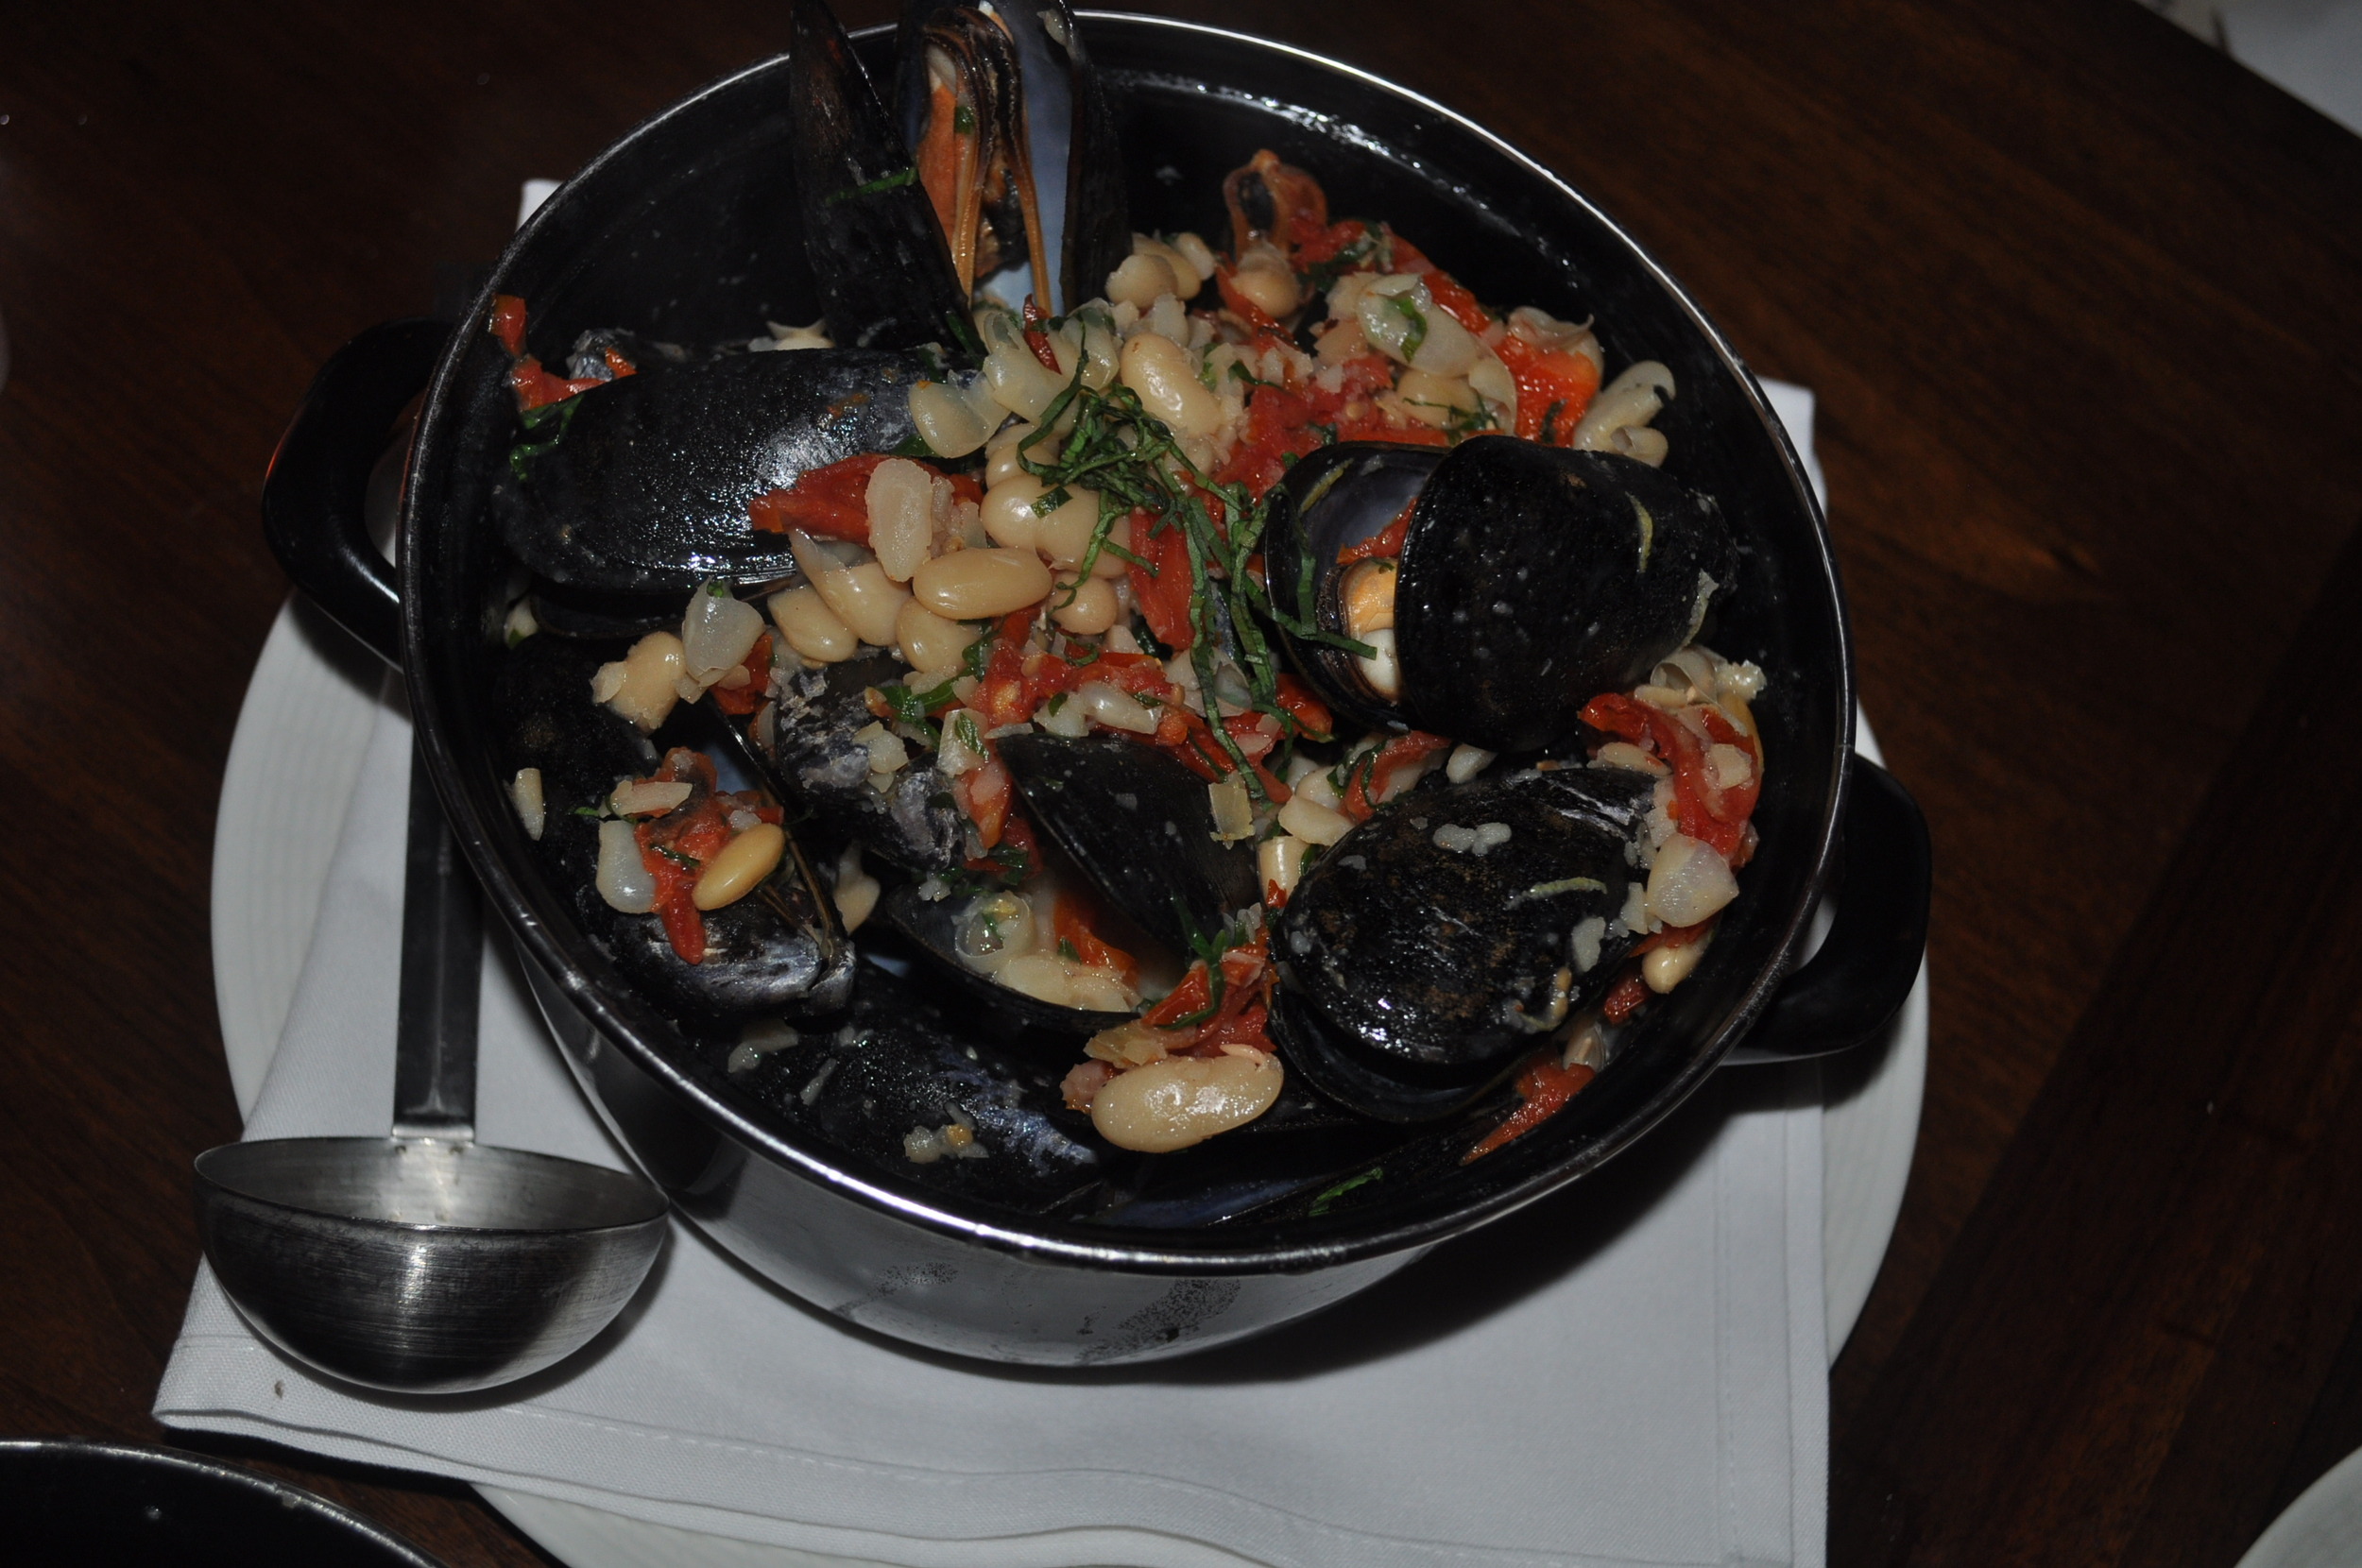 Light Tuscan mussels were added to the restaurant's 12-pot mussels rotation for the fall.